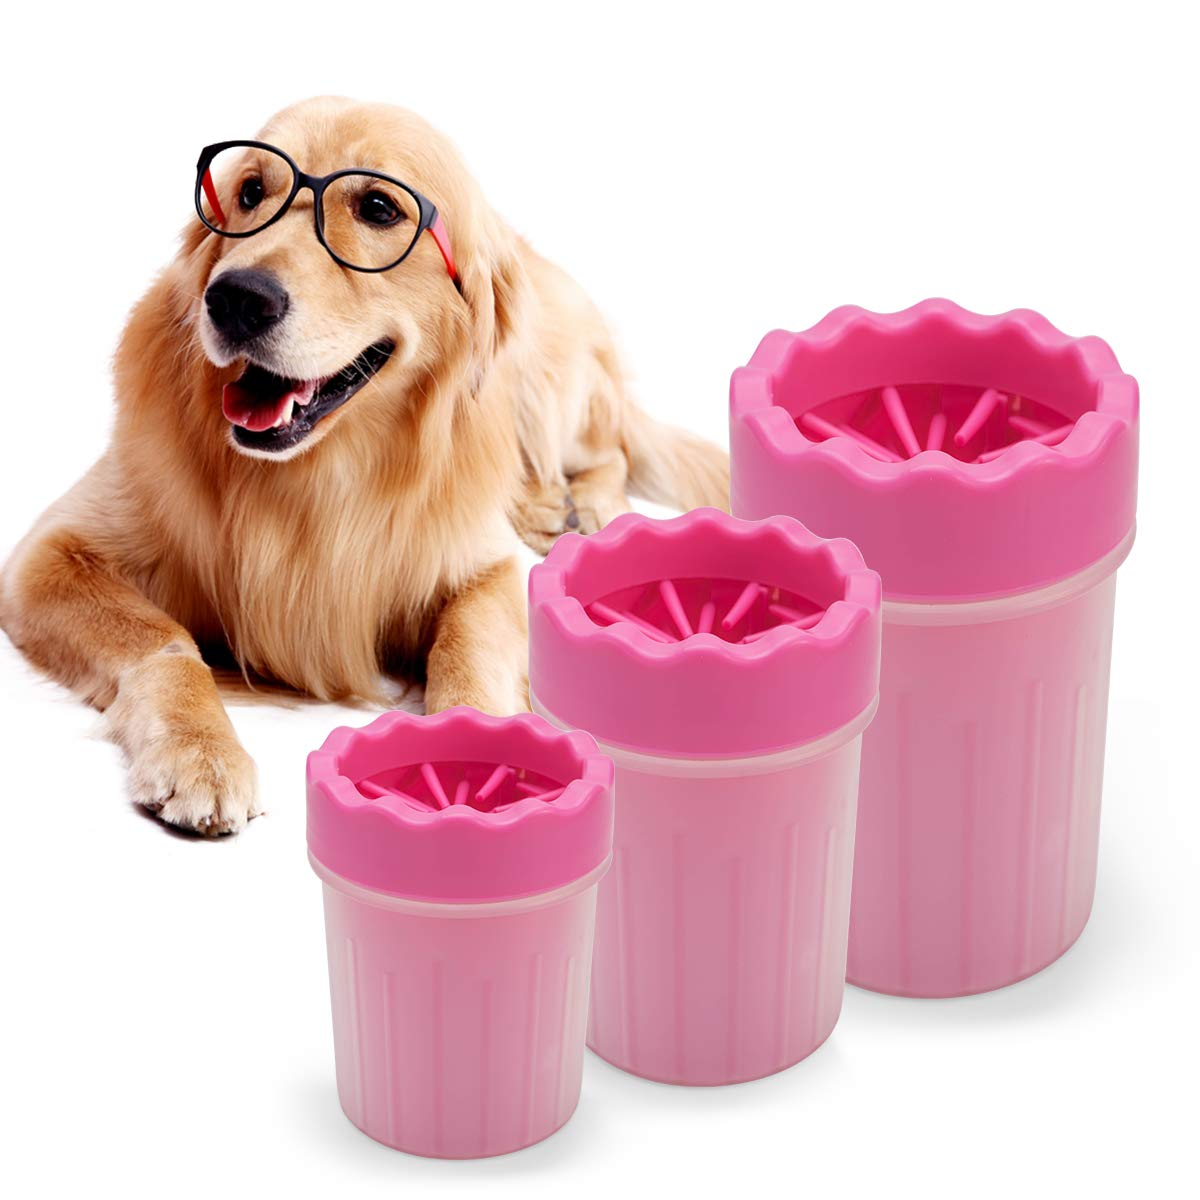 ZyMotorized Dog Foot Cleaner, Portable Pet Foot Washing Cup Soft Silicone Dog Paw Cleaner Pet Cleaning Brush Cup Tool for Dogs and Cats